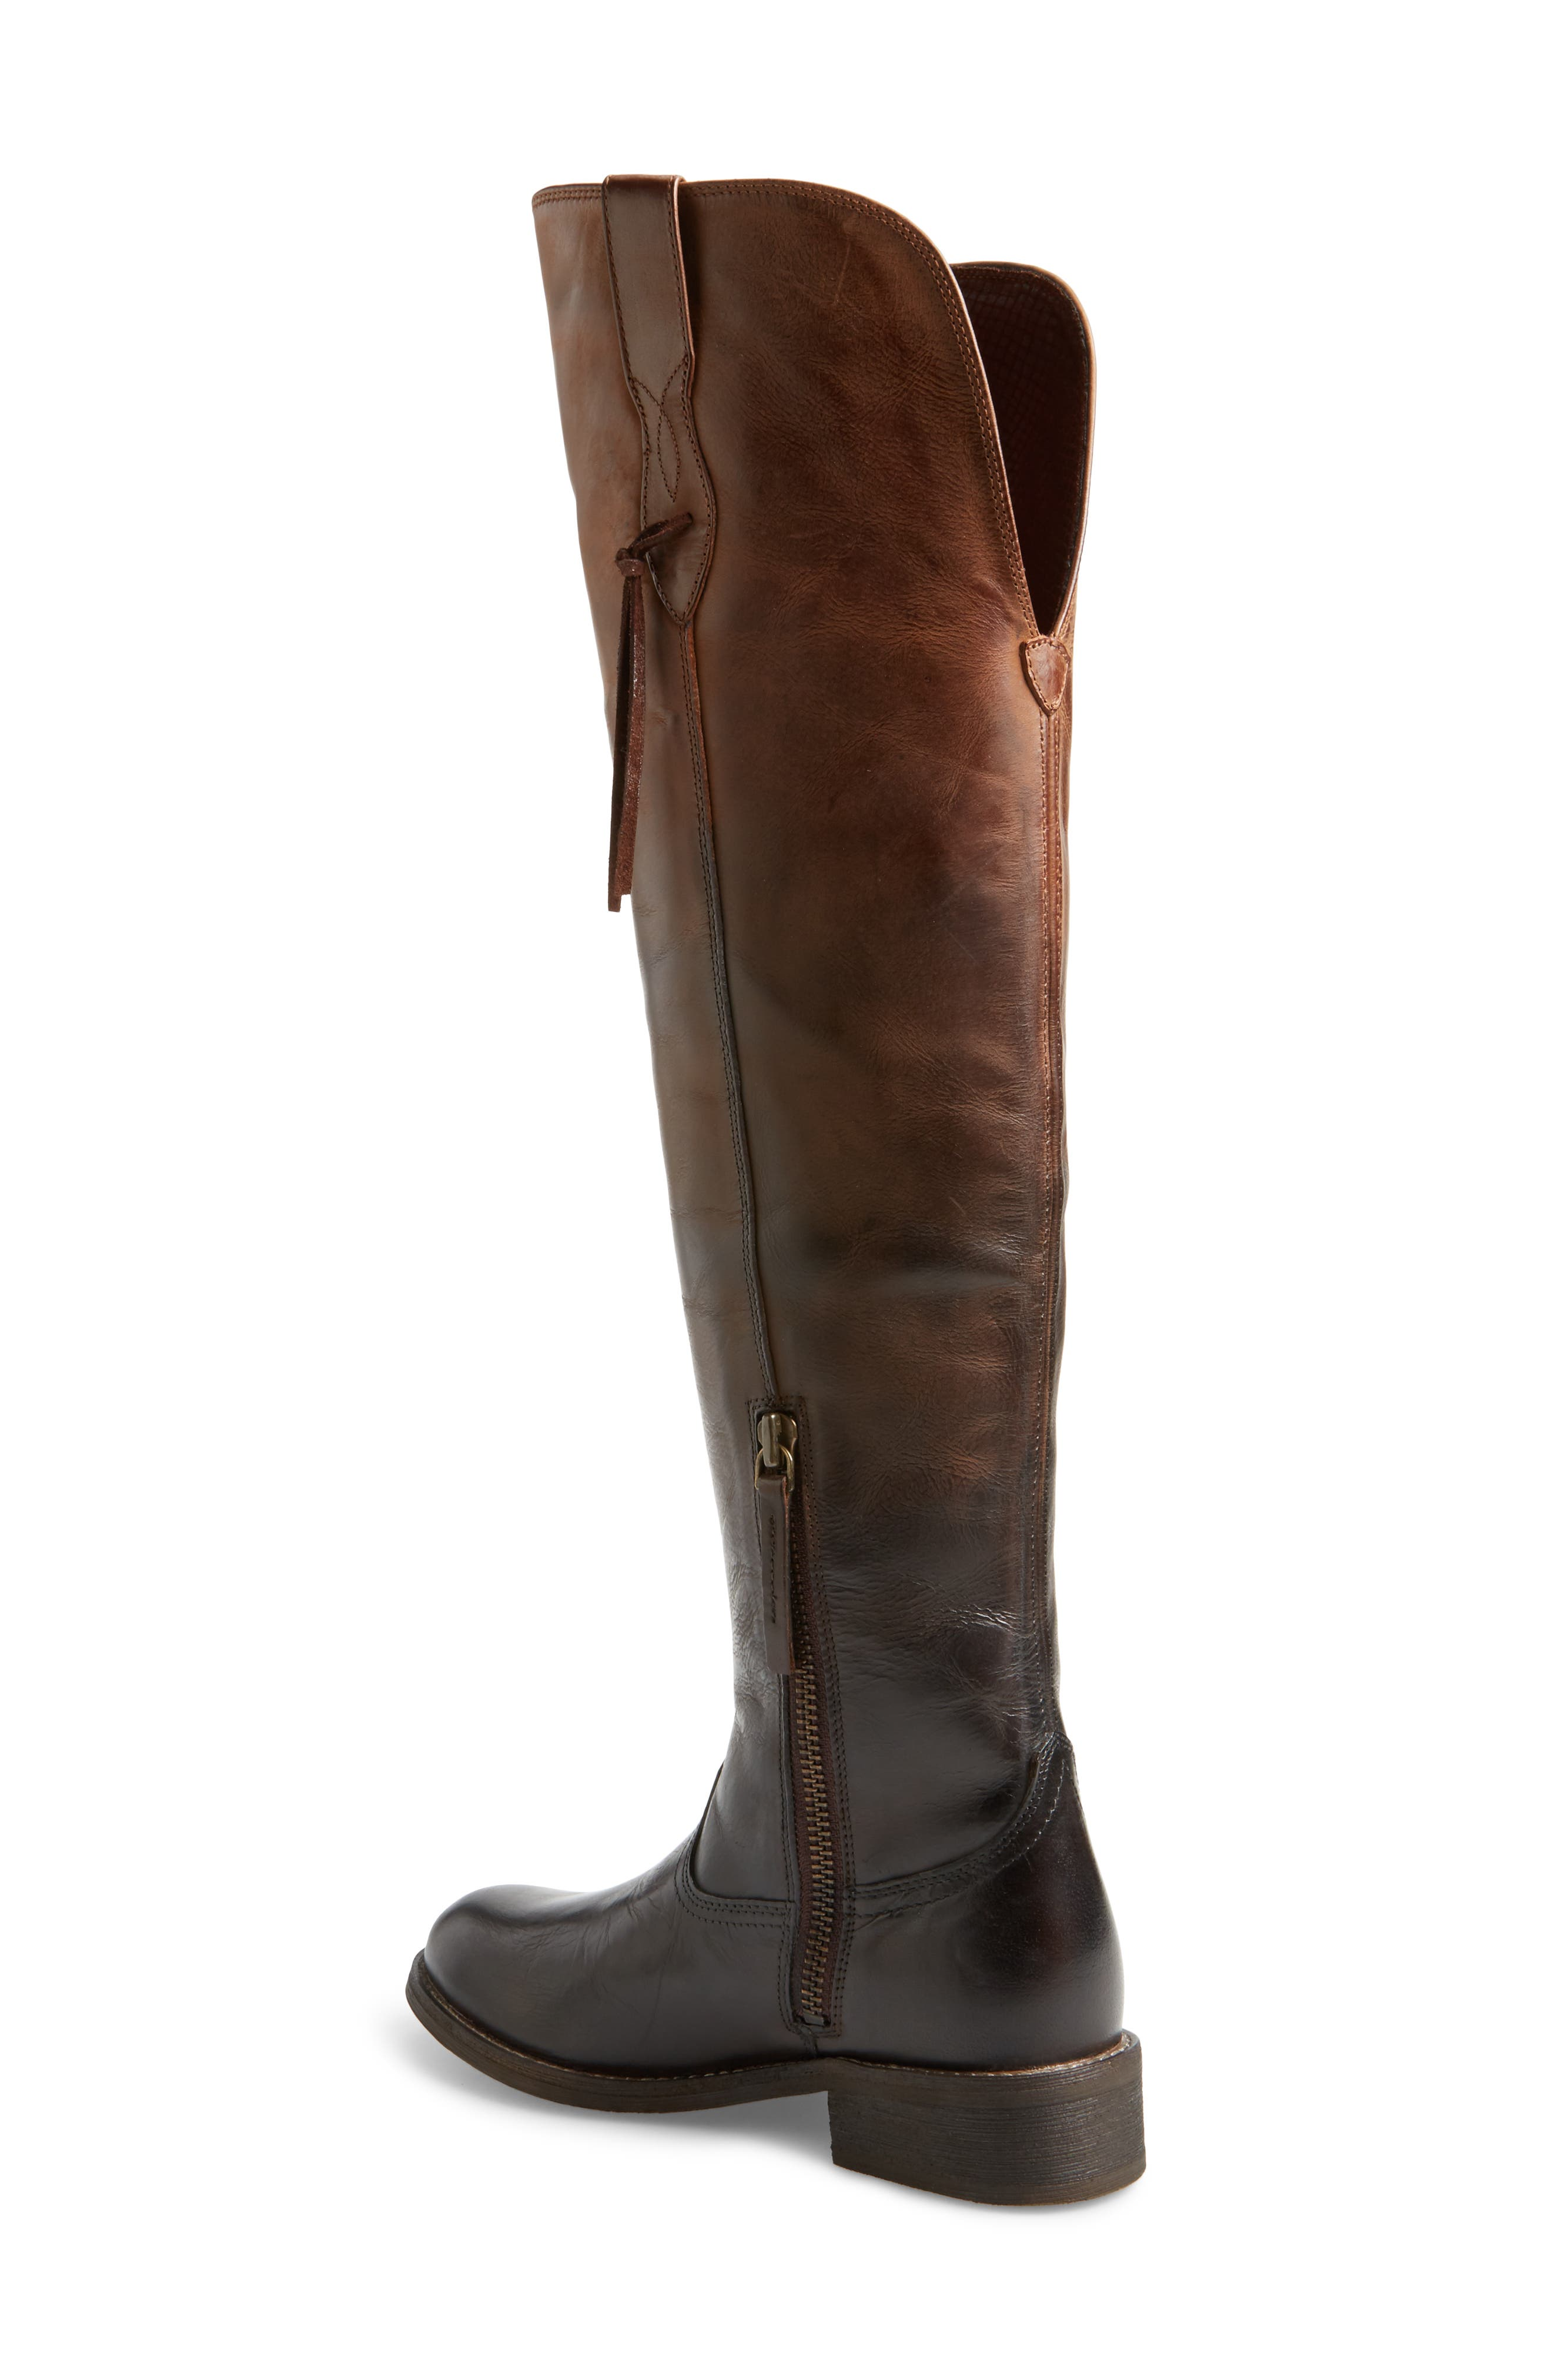 Farrah Over the Knee Boot,                             Alternate thumbnail 2, color,                             Sassy Chocolate Leather